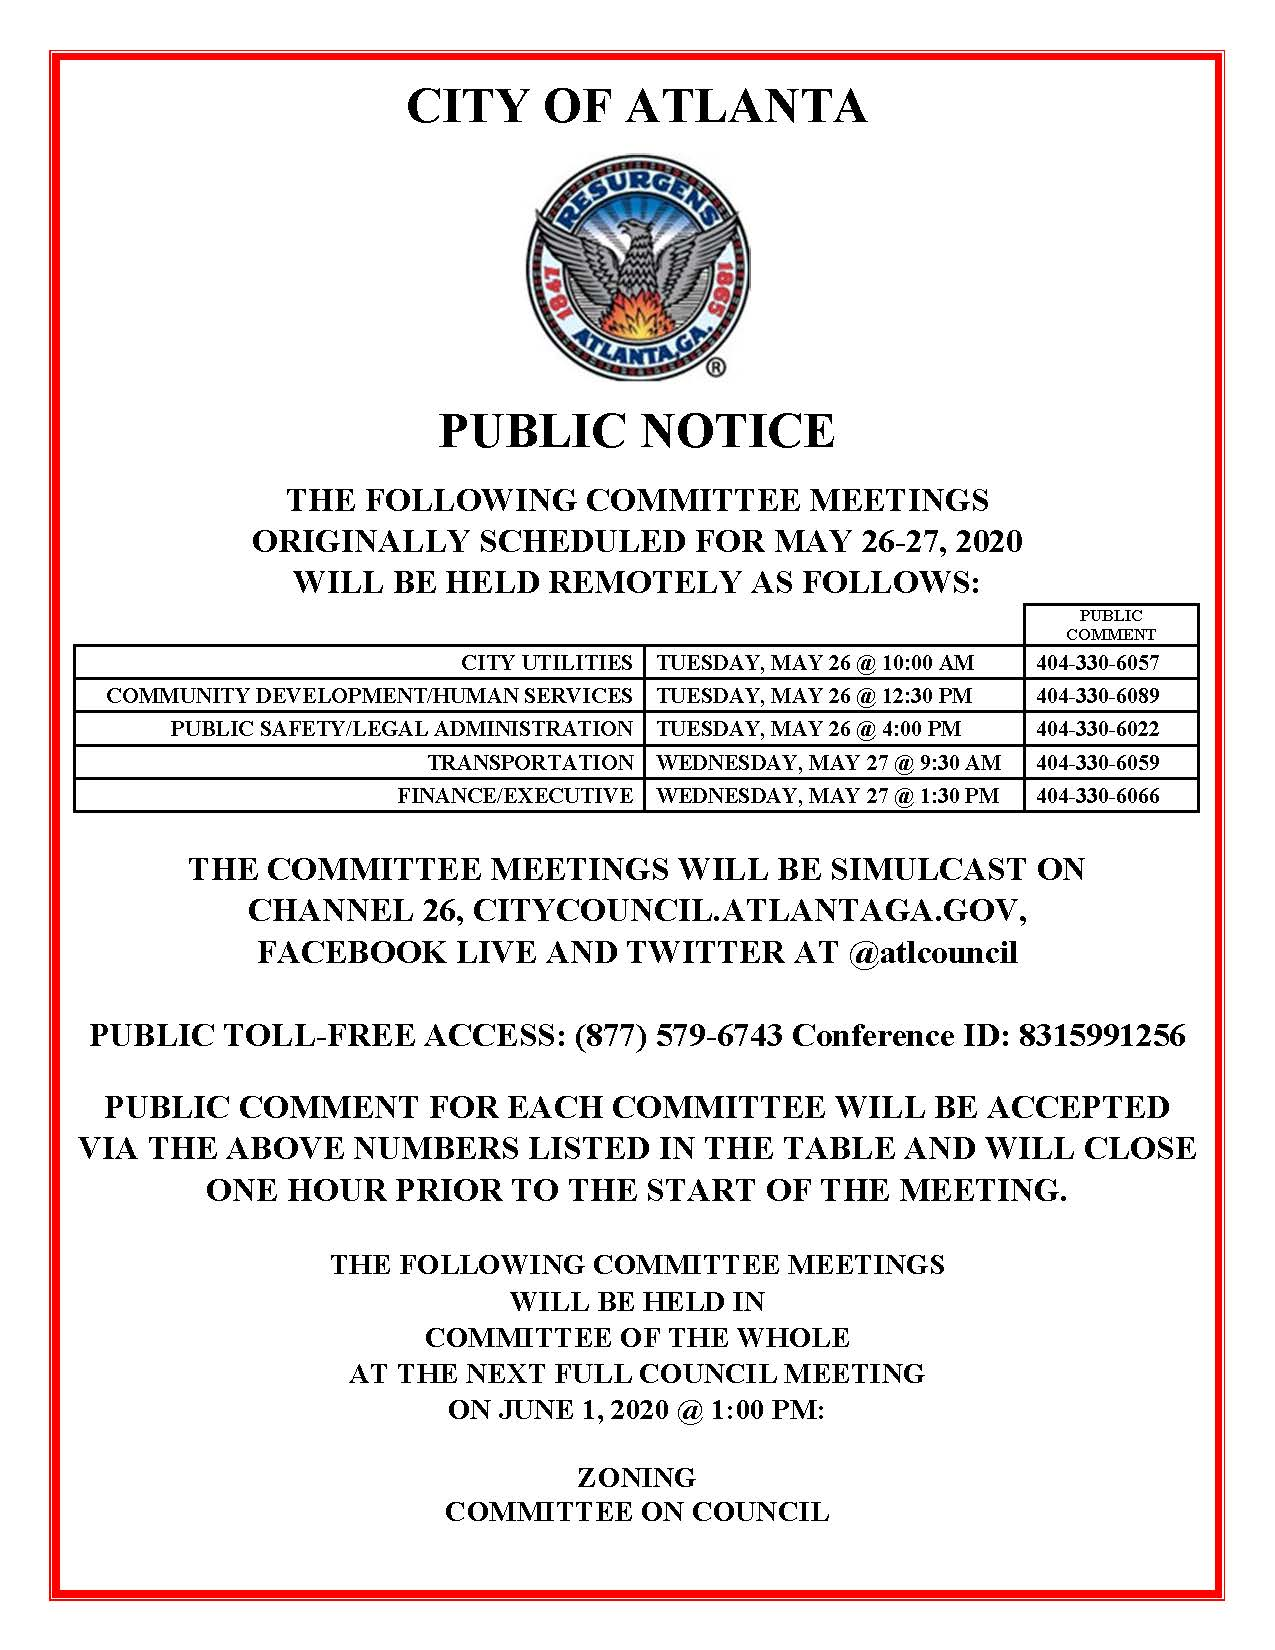 May 26-27 Committee Meetings Public Notice (Public)